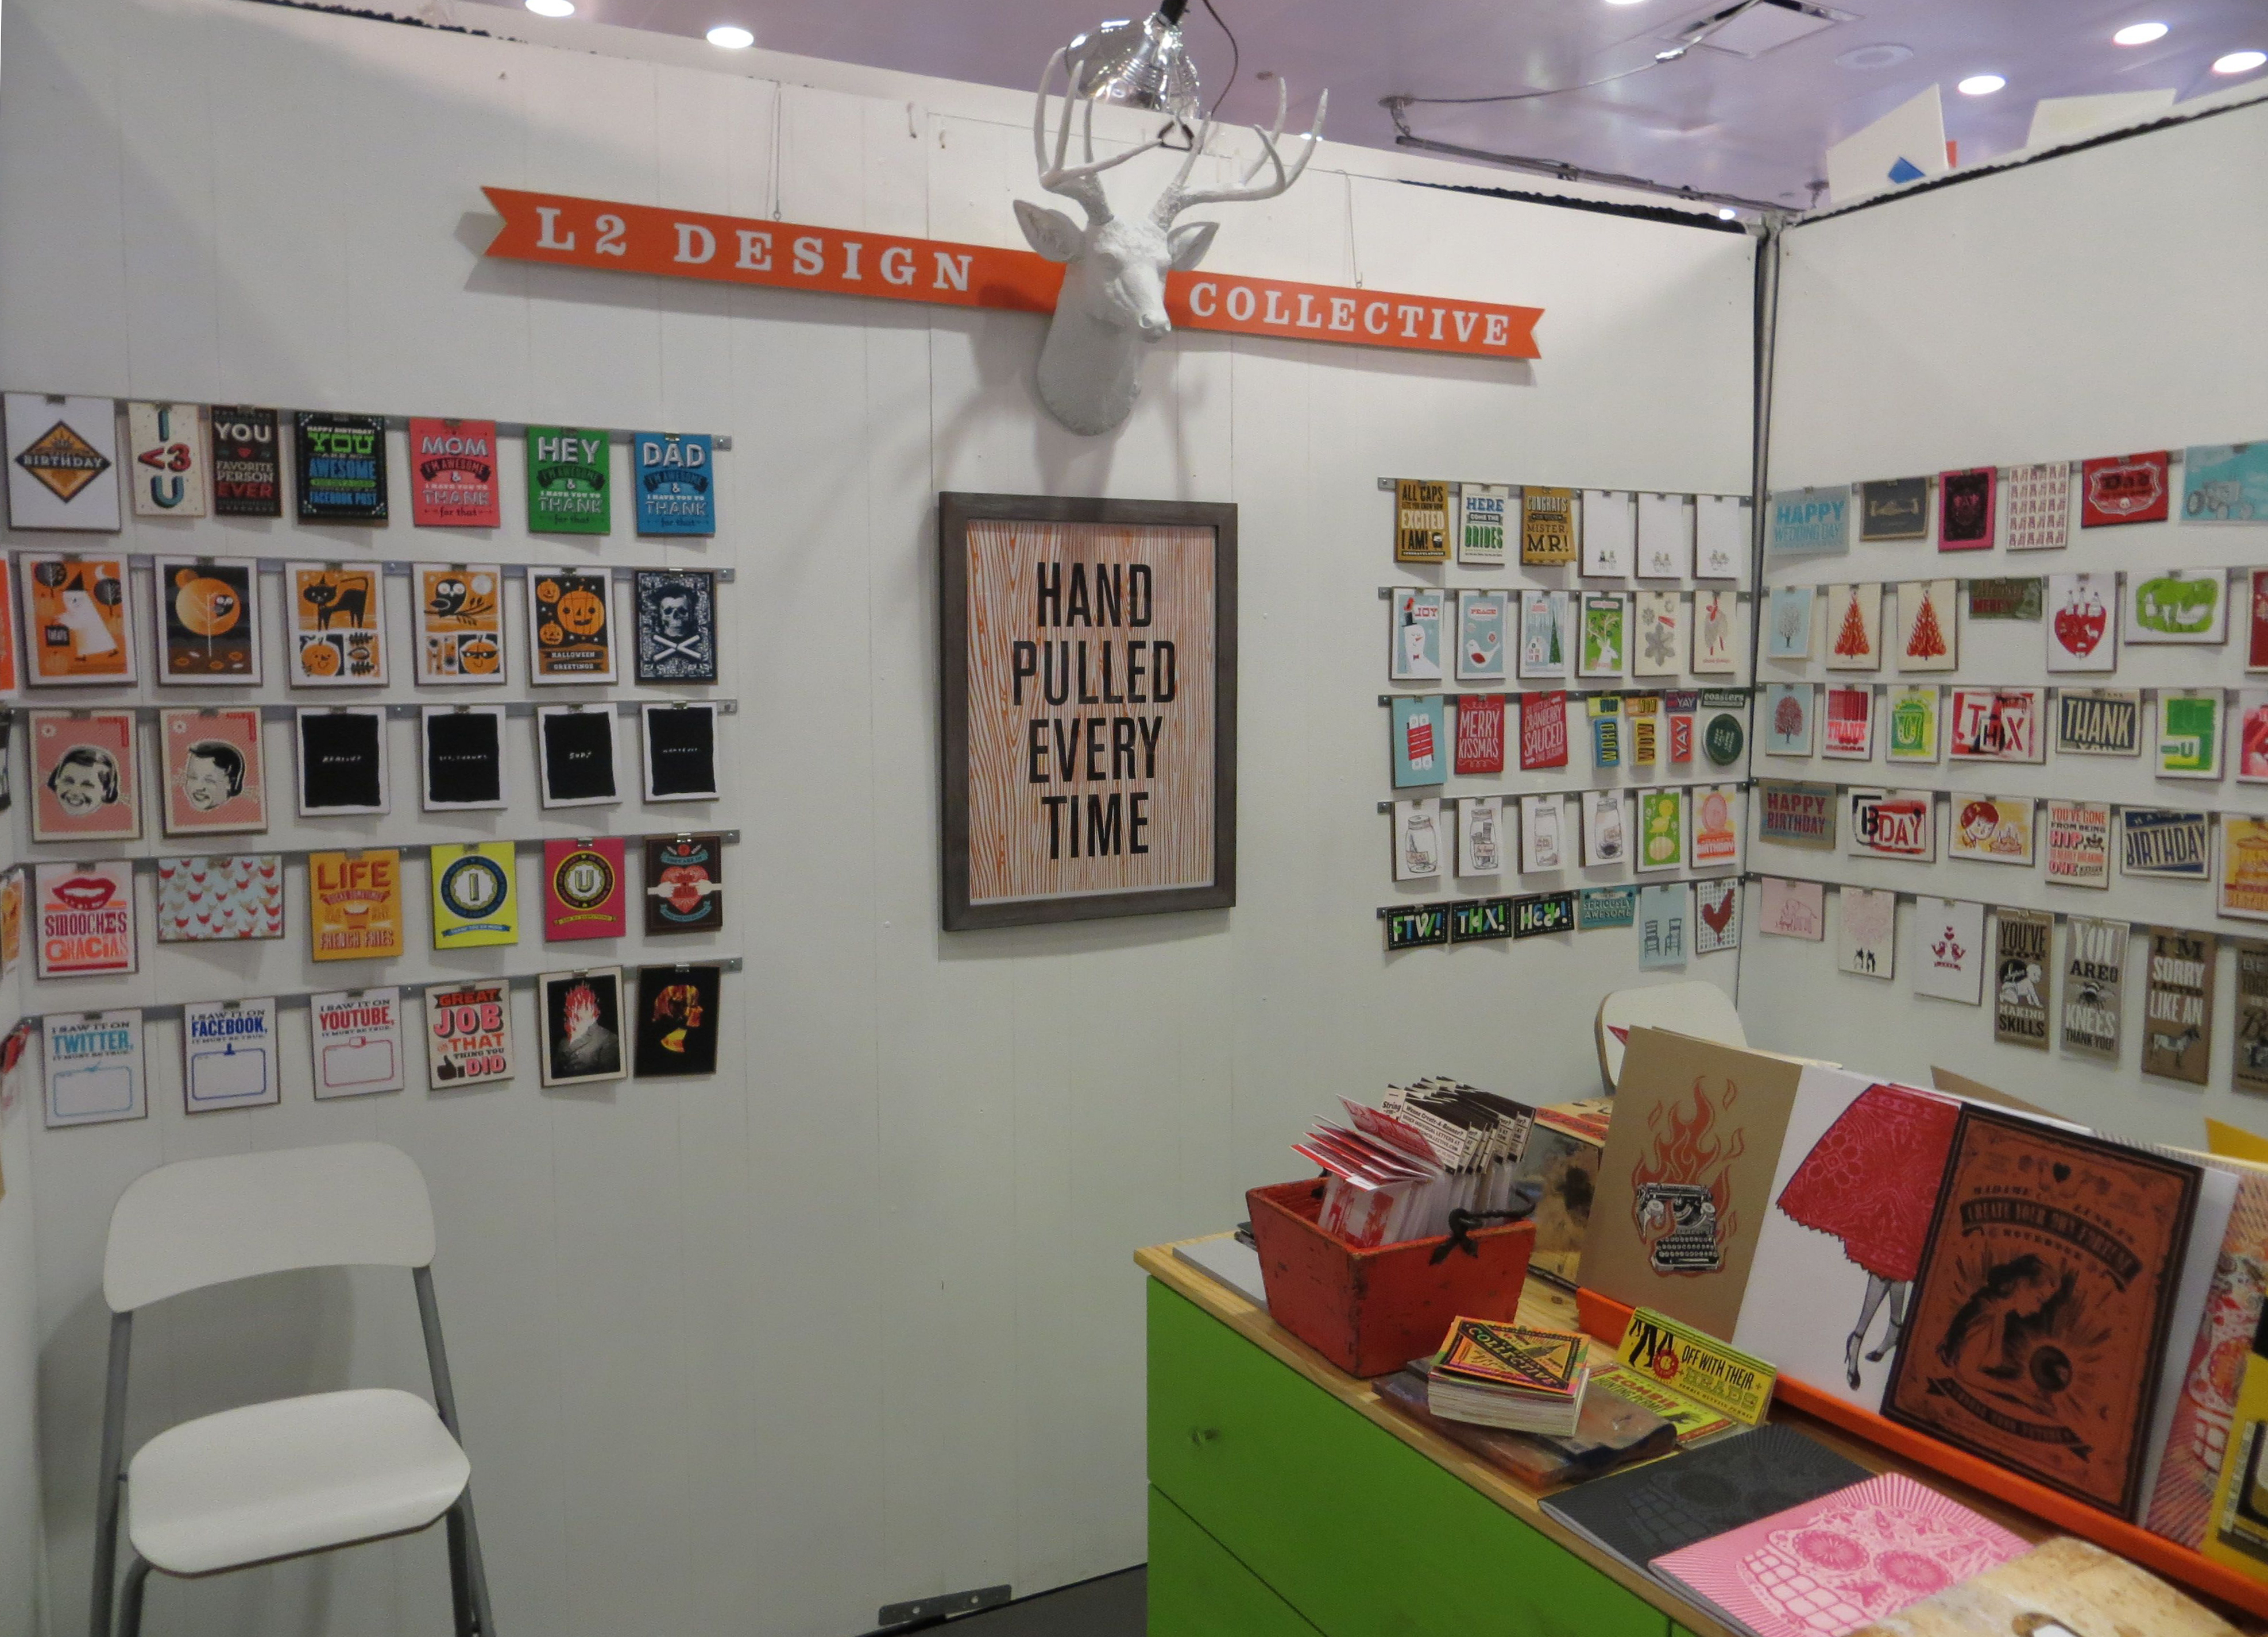 L2 Design Collective booth